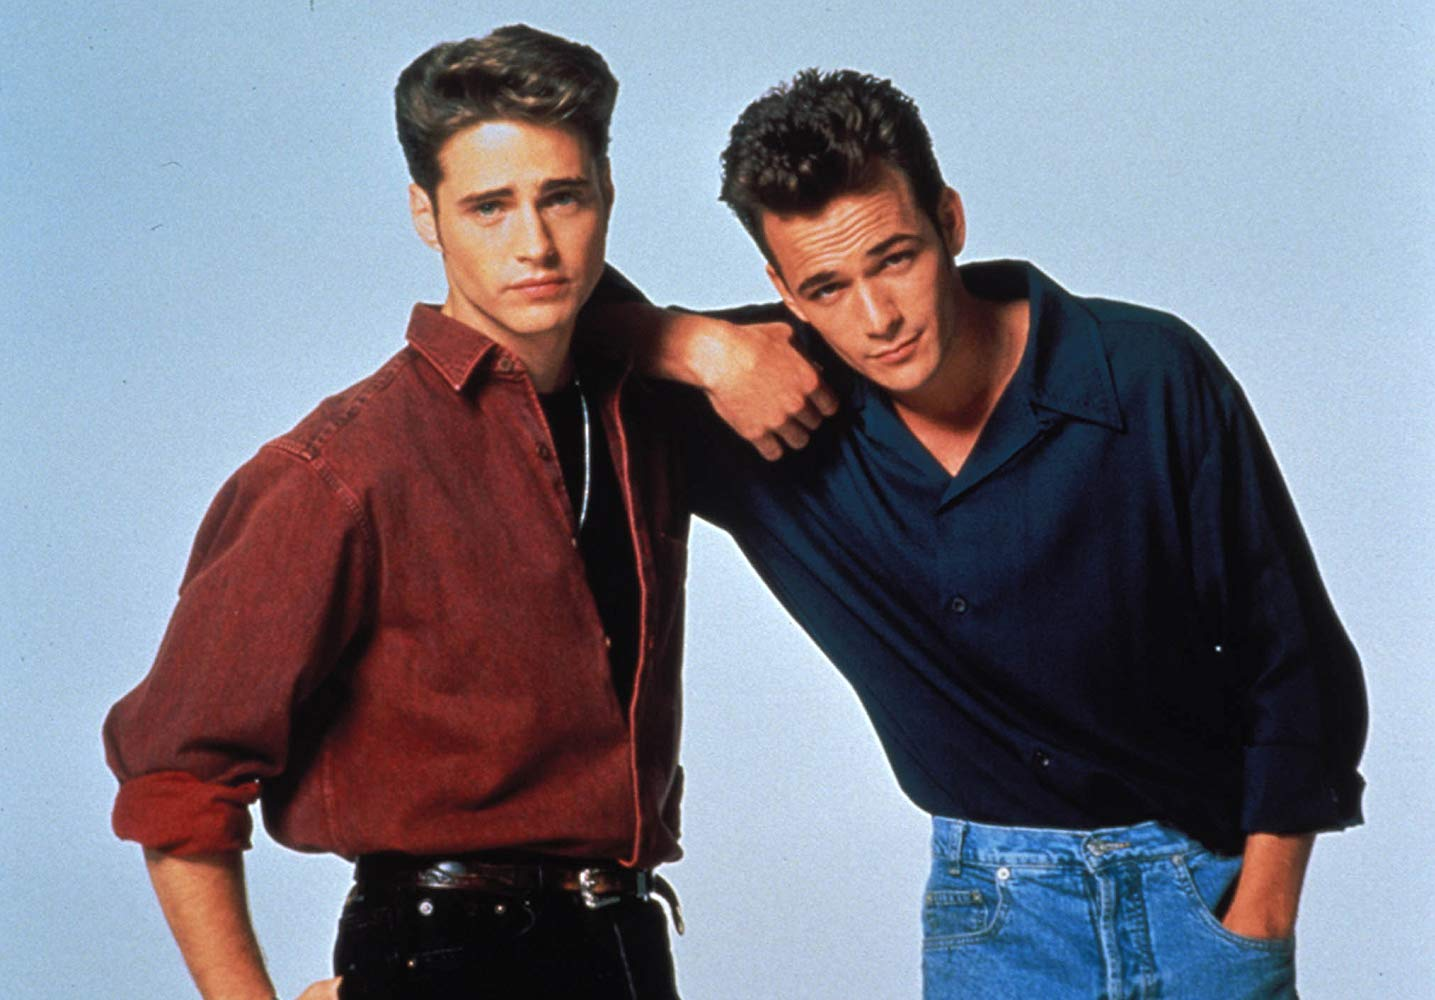 Jason Priestley Just Released A Touching Tribute To Luke Perry